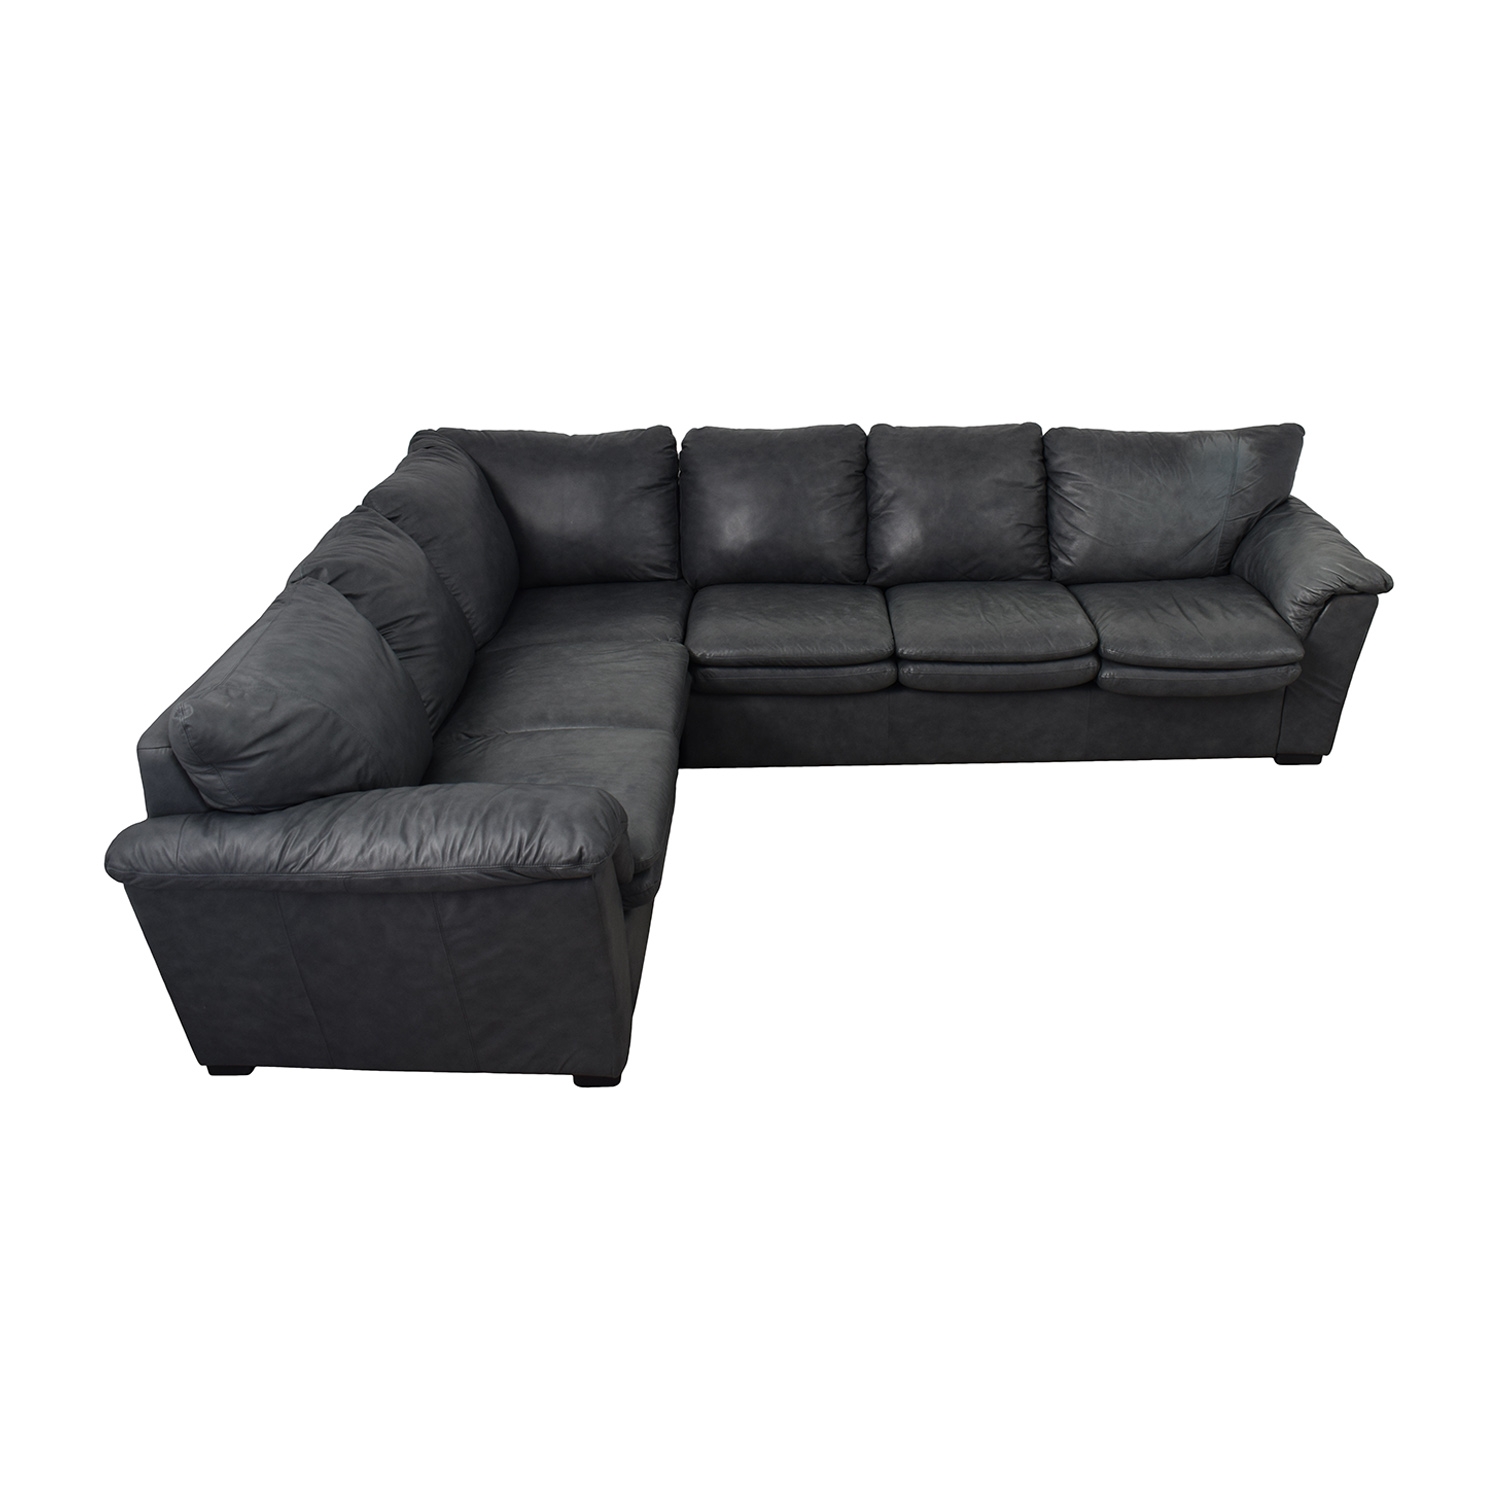 90 off jaymar jaymar furniture charcoal leather l shaped sectional sofas